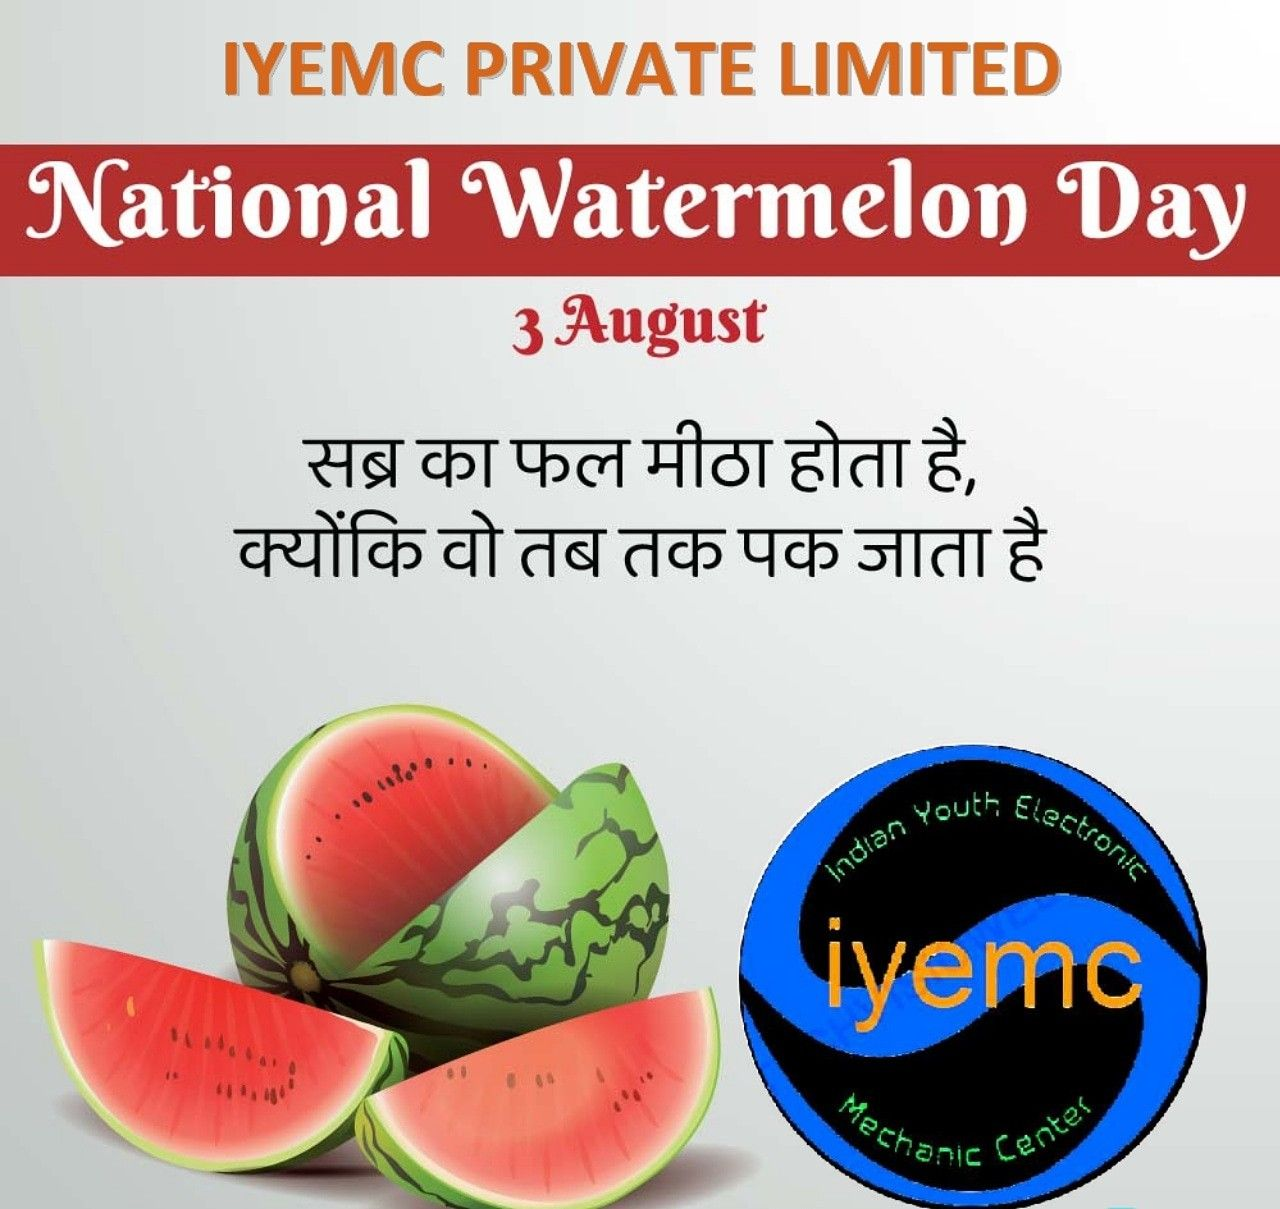 National Watermelon Day is a nonofficial American holiday